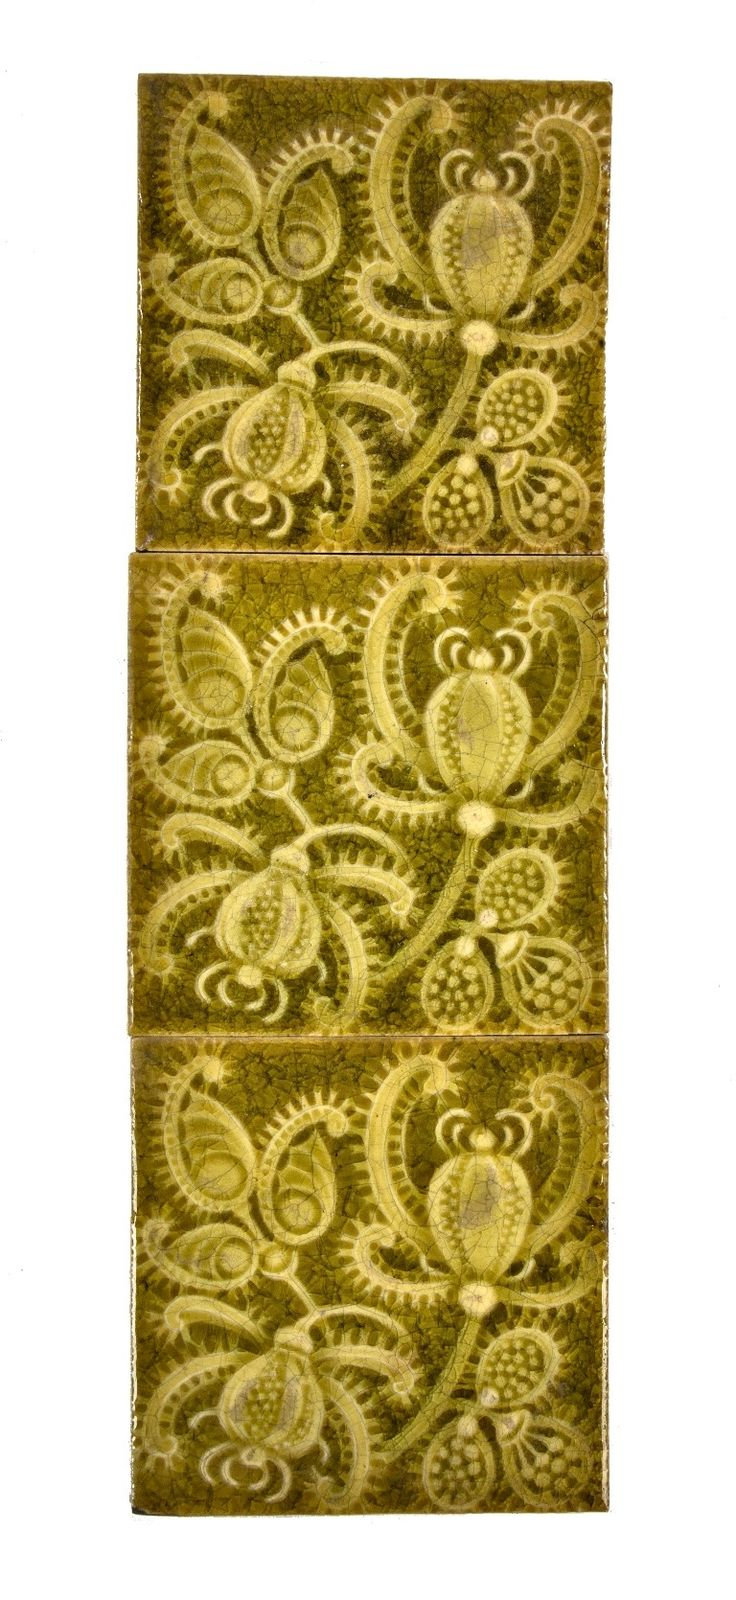 46 best Majolica Fireplace Tiles images on Pinterest | Fireplace ...